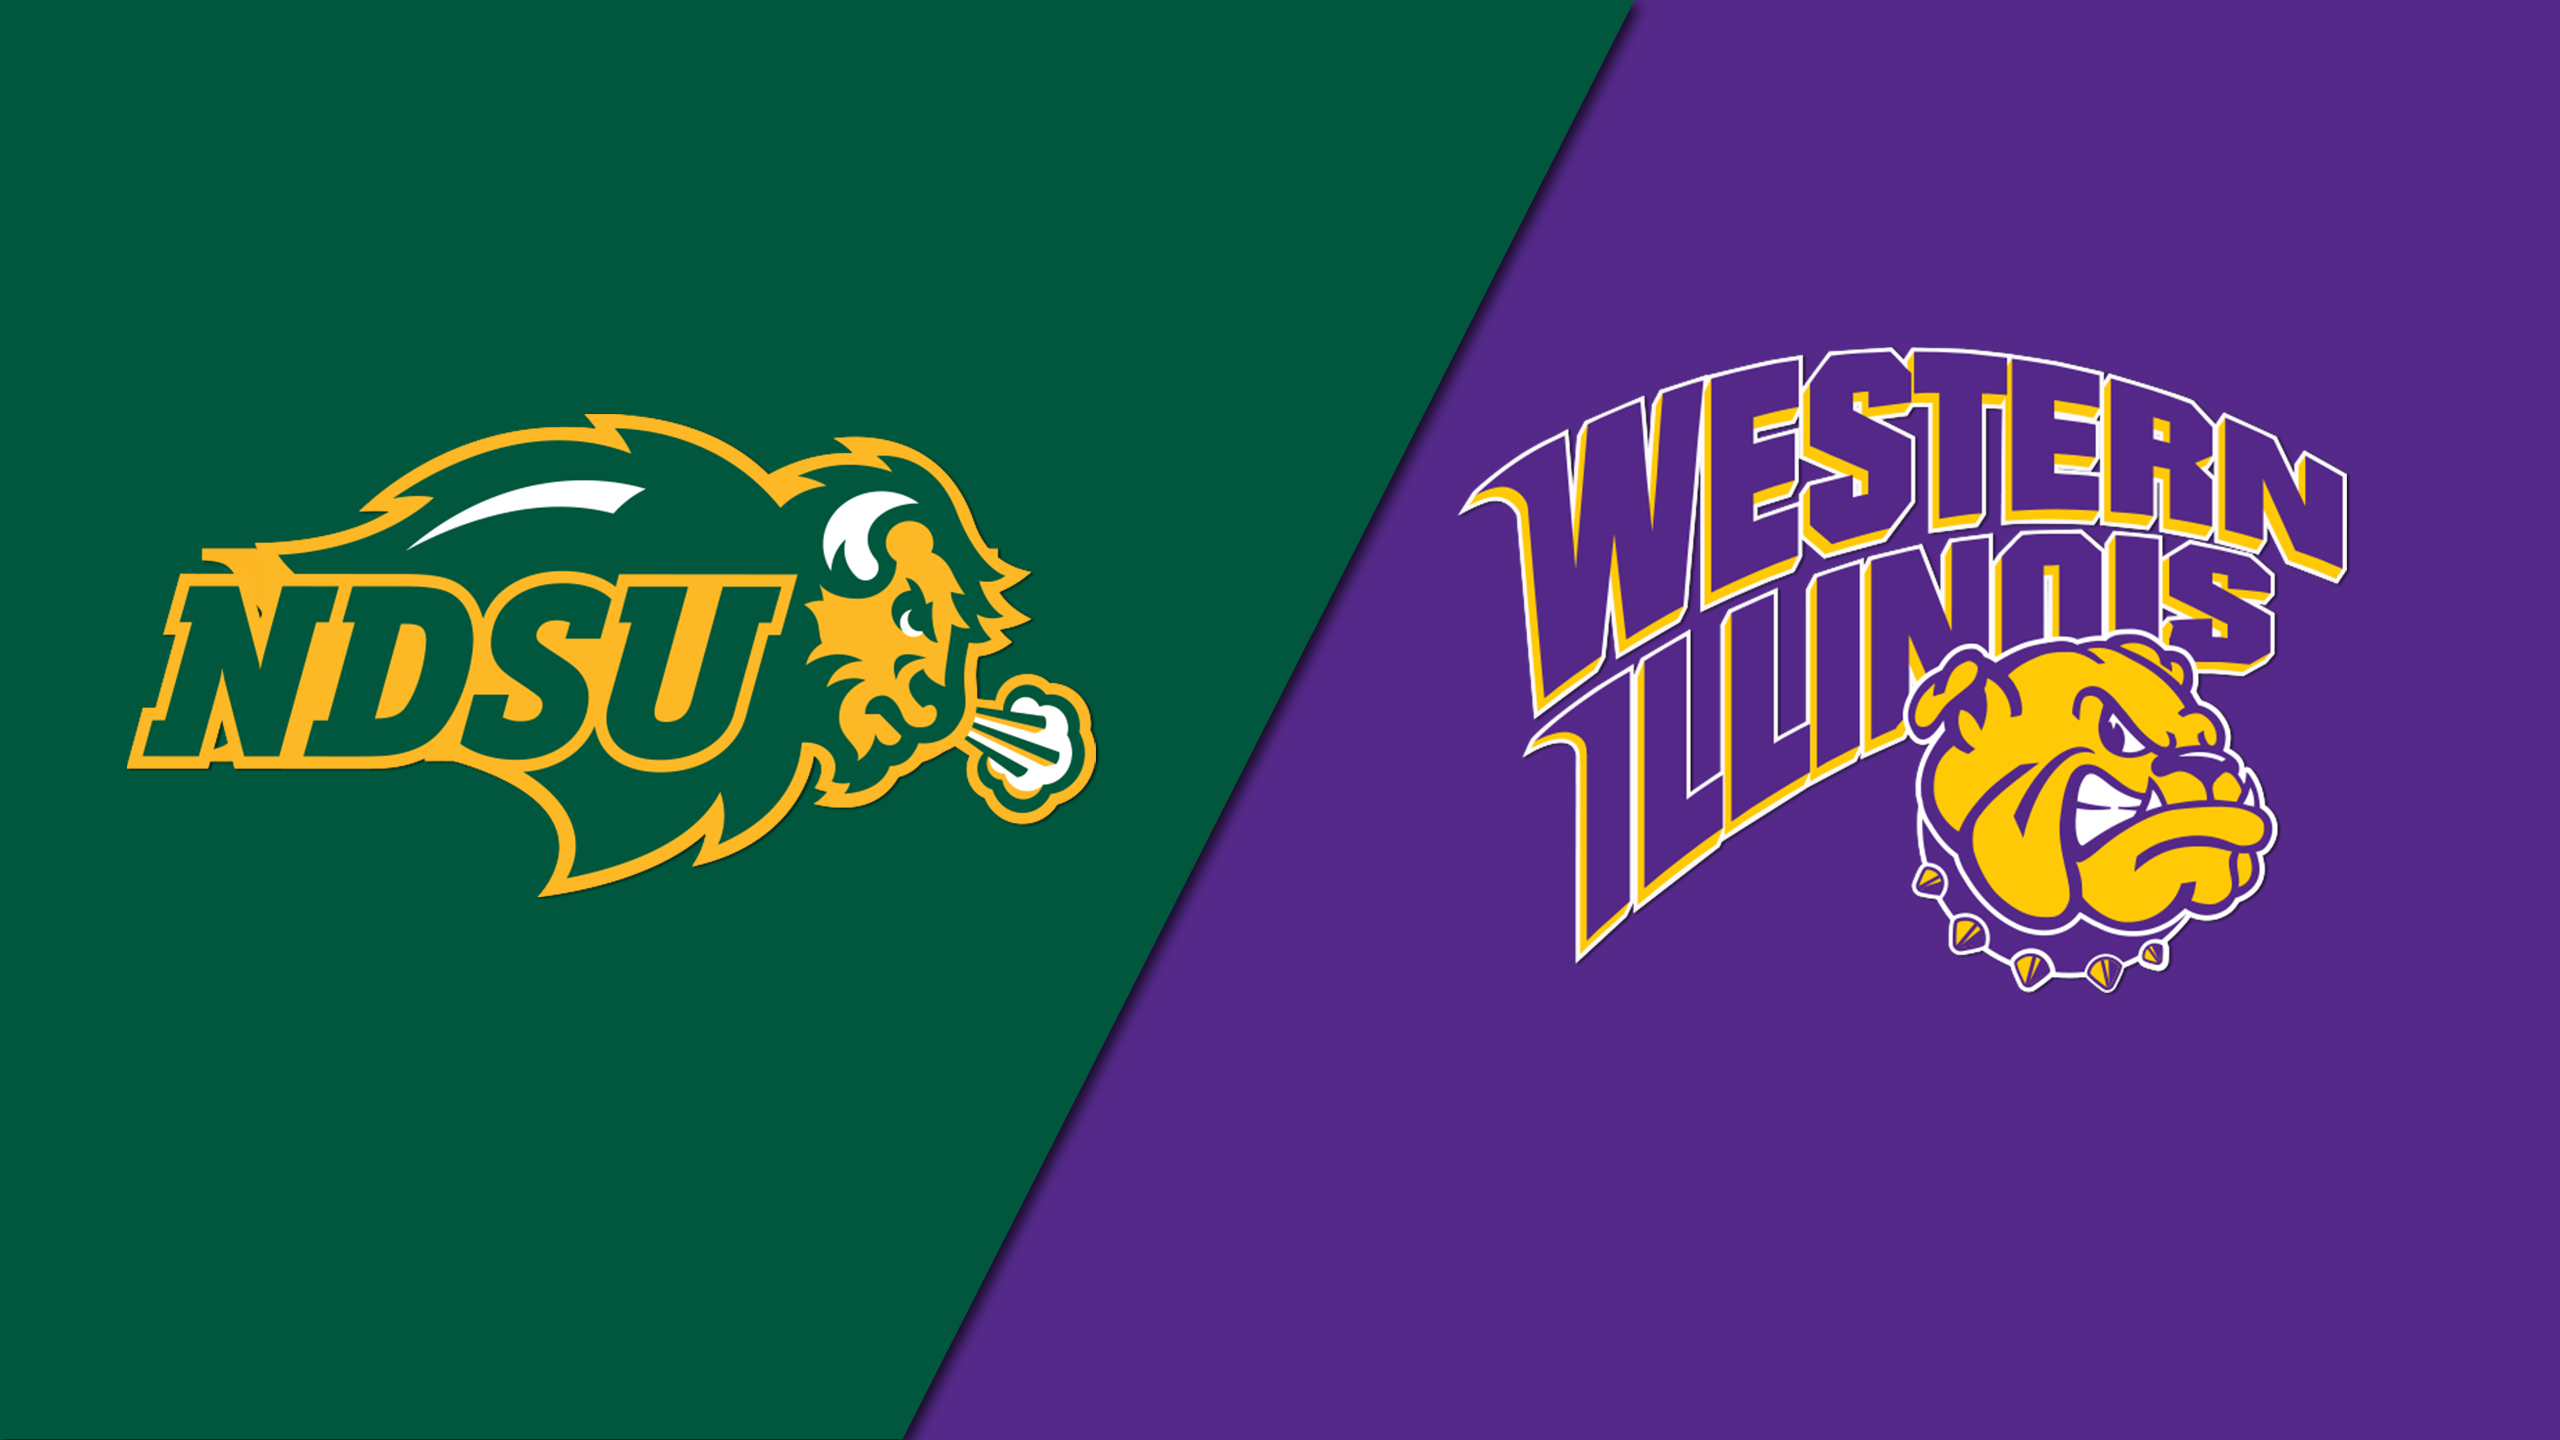 North Dakota State vs. Western Illinois (Baseball)